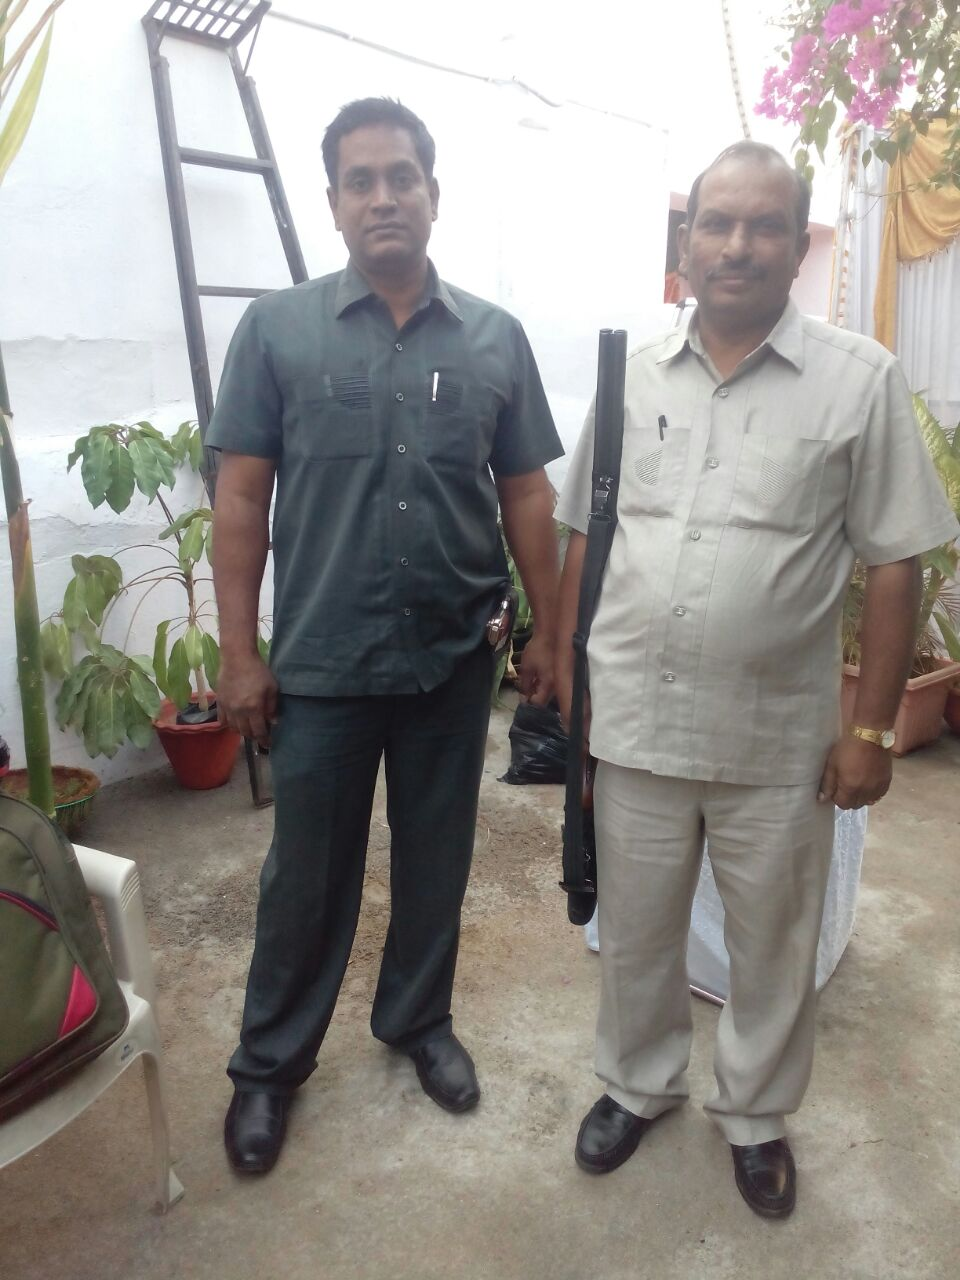 Armed Bodyguards Ex Servicemen And Bodyguard Bouncers For